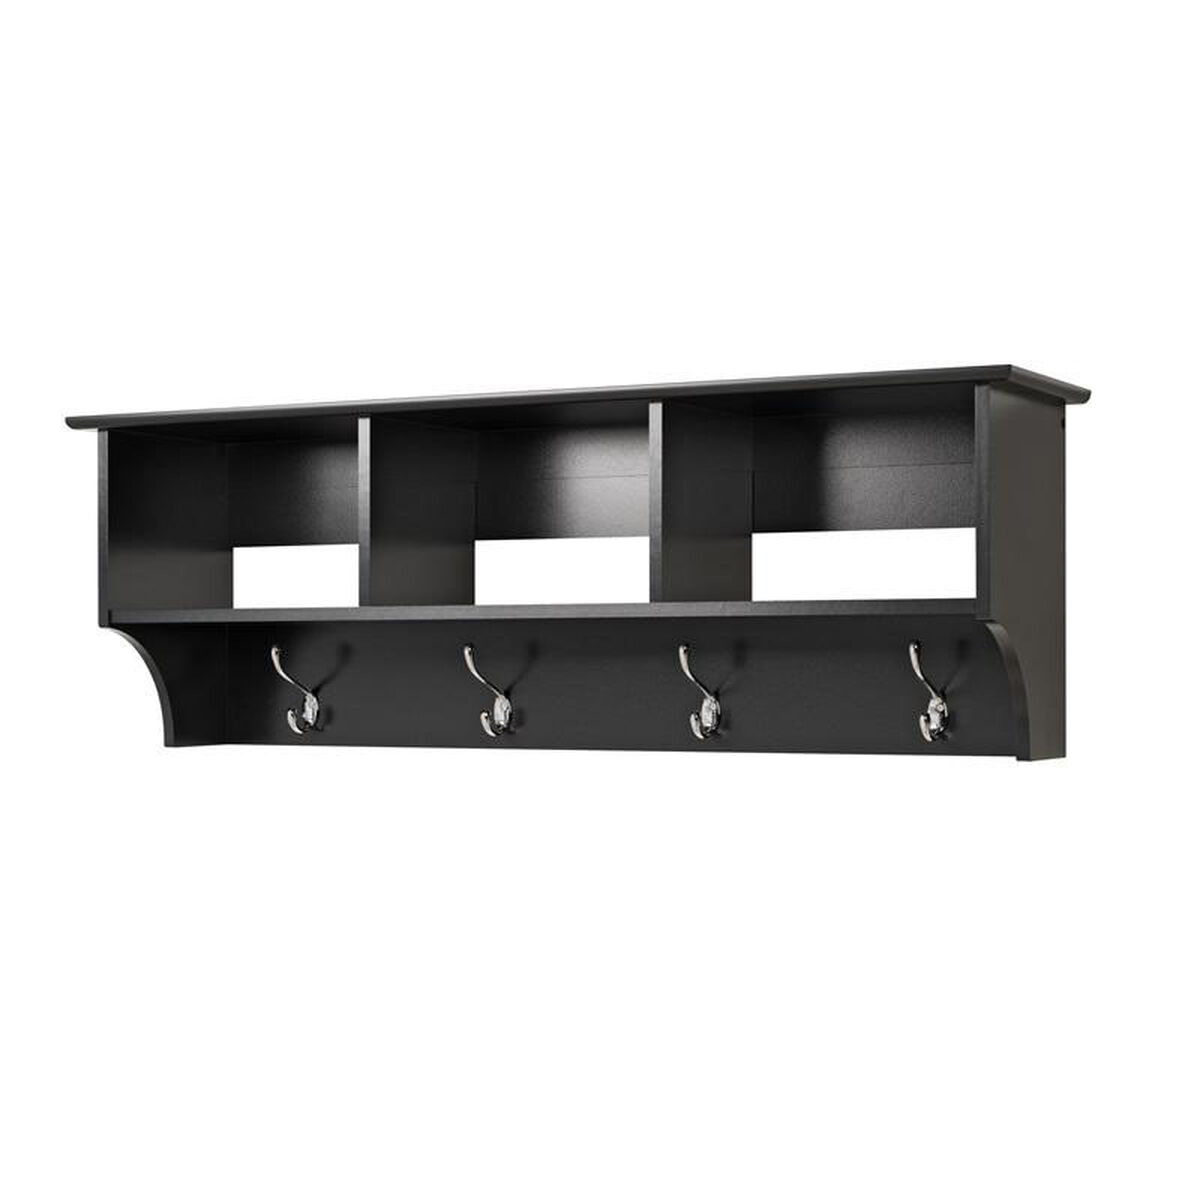 Our Sonoma Entryway Cubbie Shelf With 3 Open Storage Compartments And 4 Coat Hooks Black